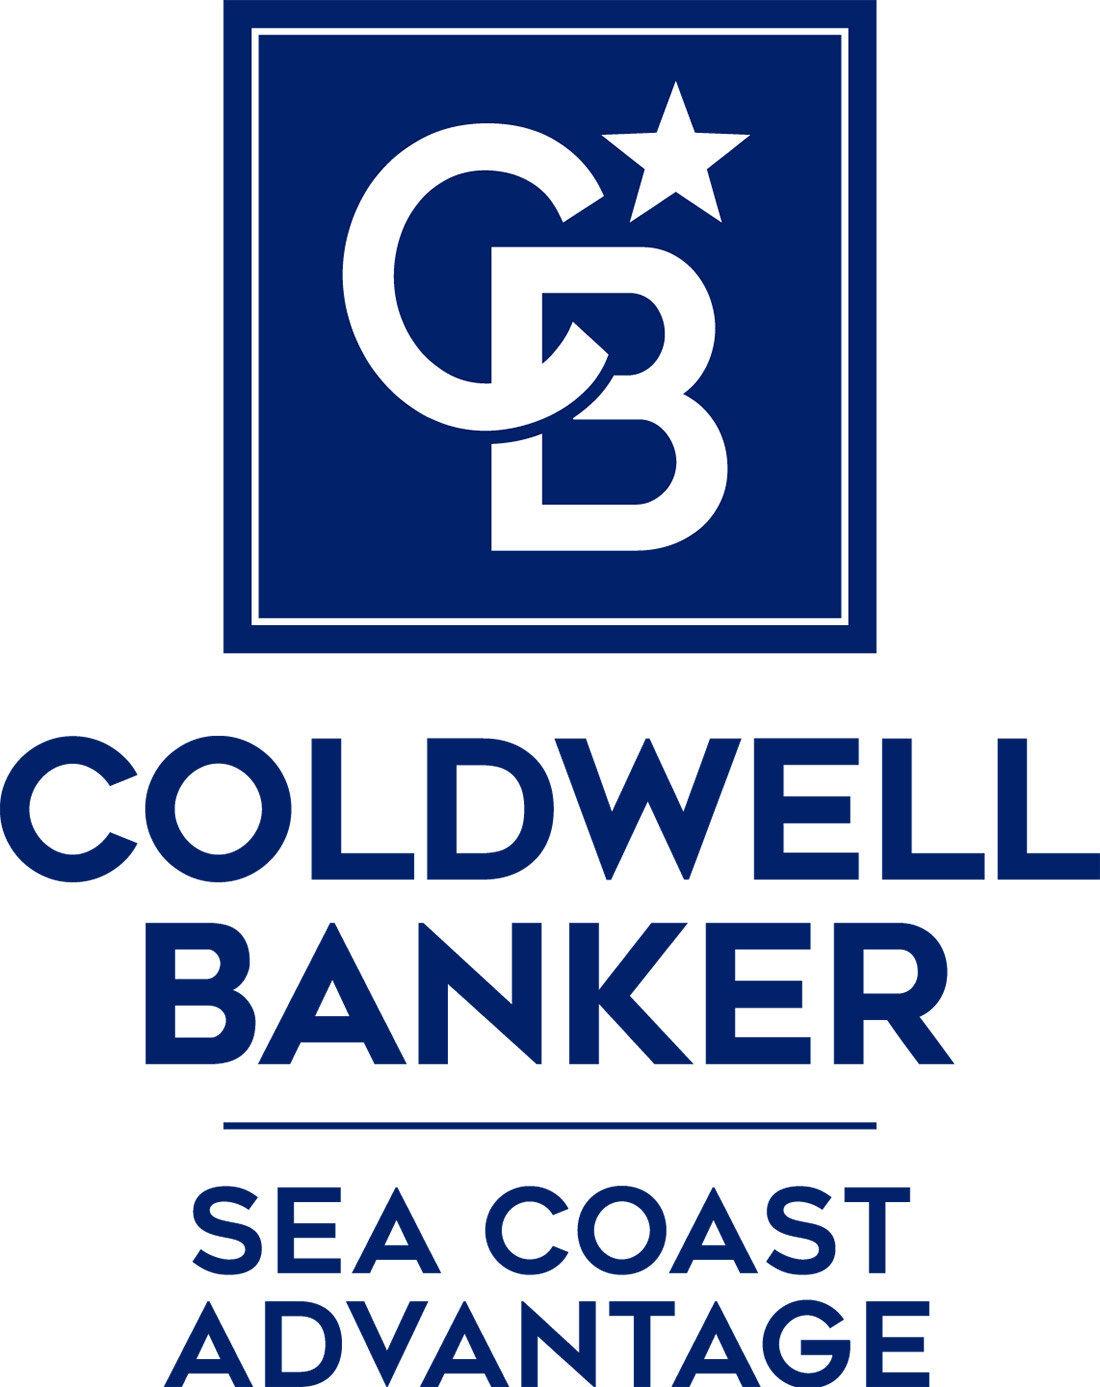 Patty O'Loughlin - Coldwell Banker Sea Coast Advantage Realty